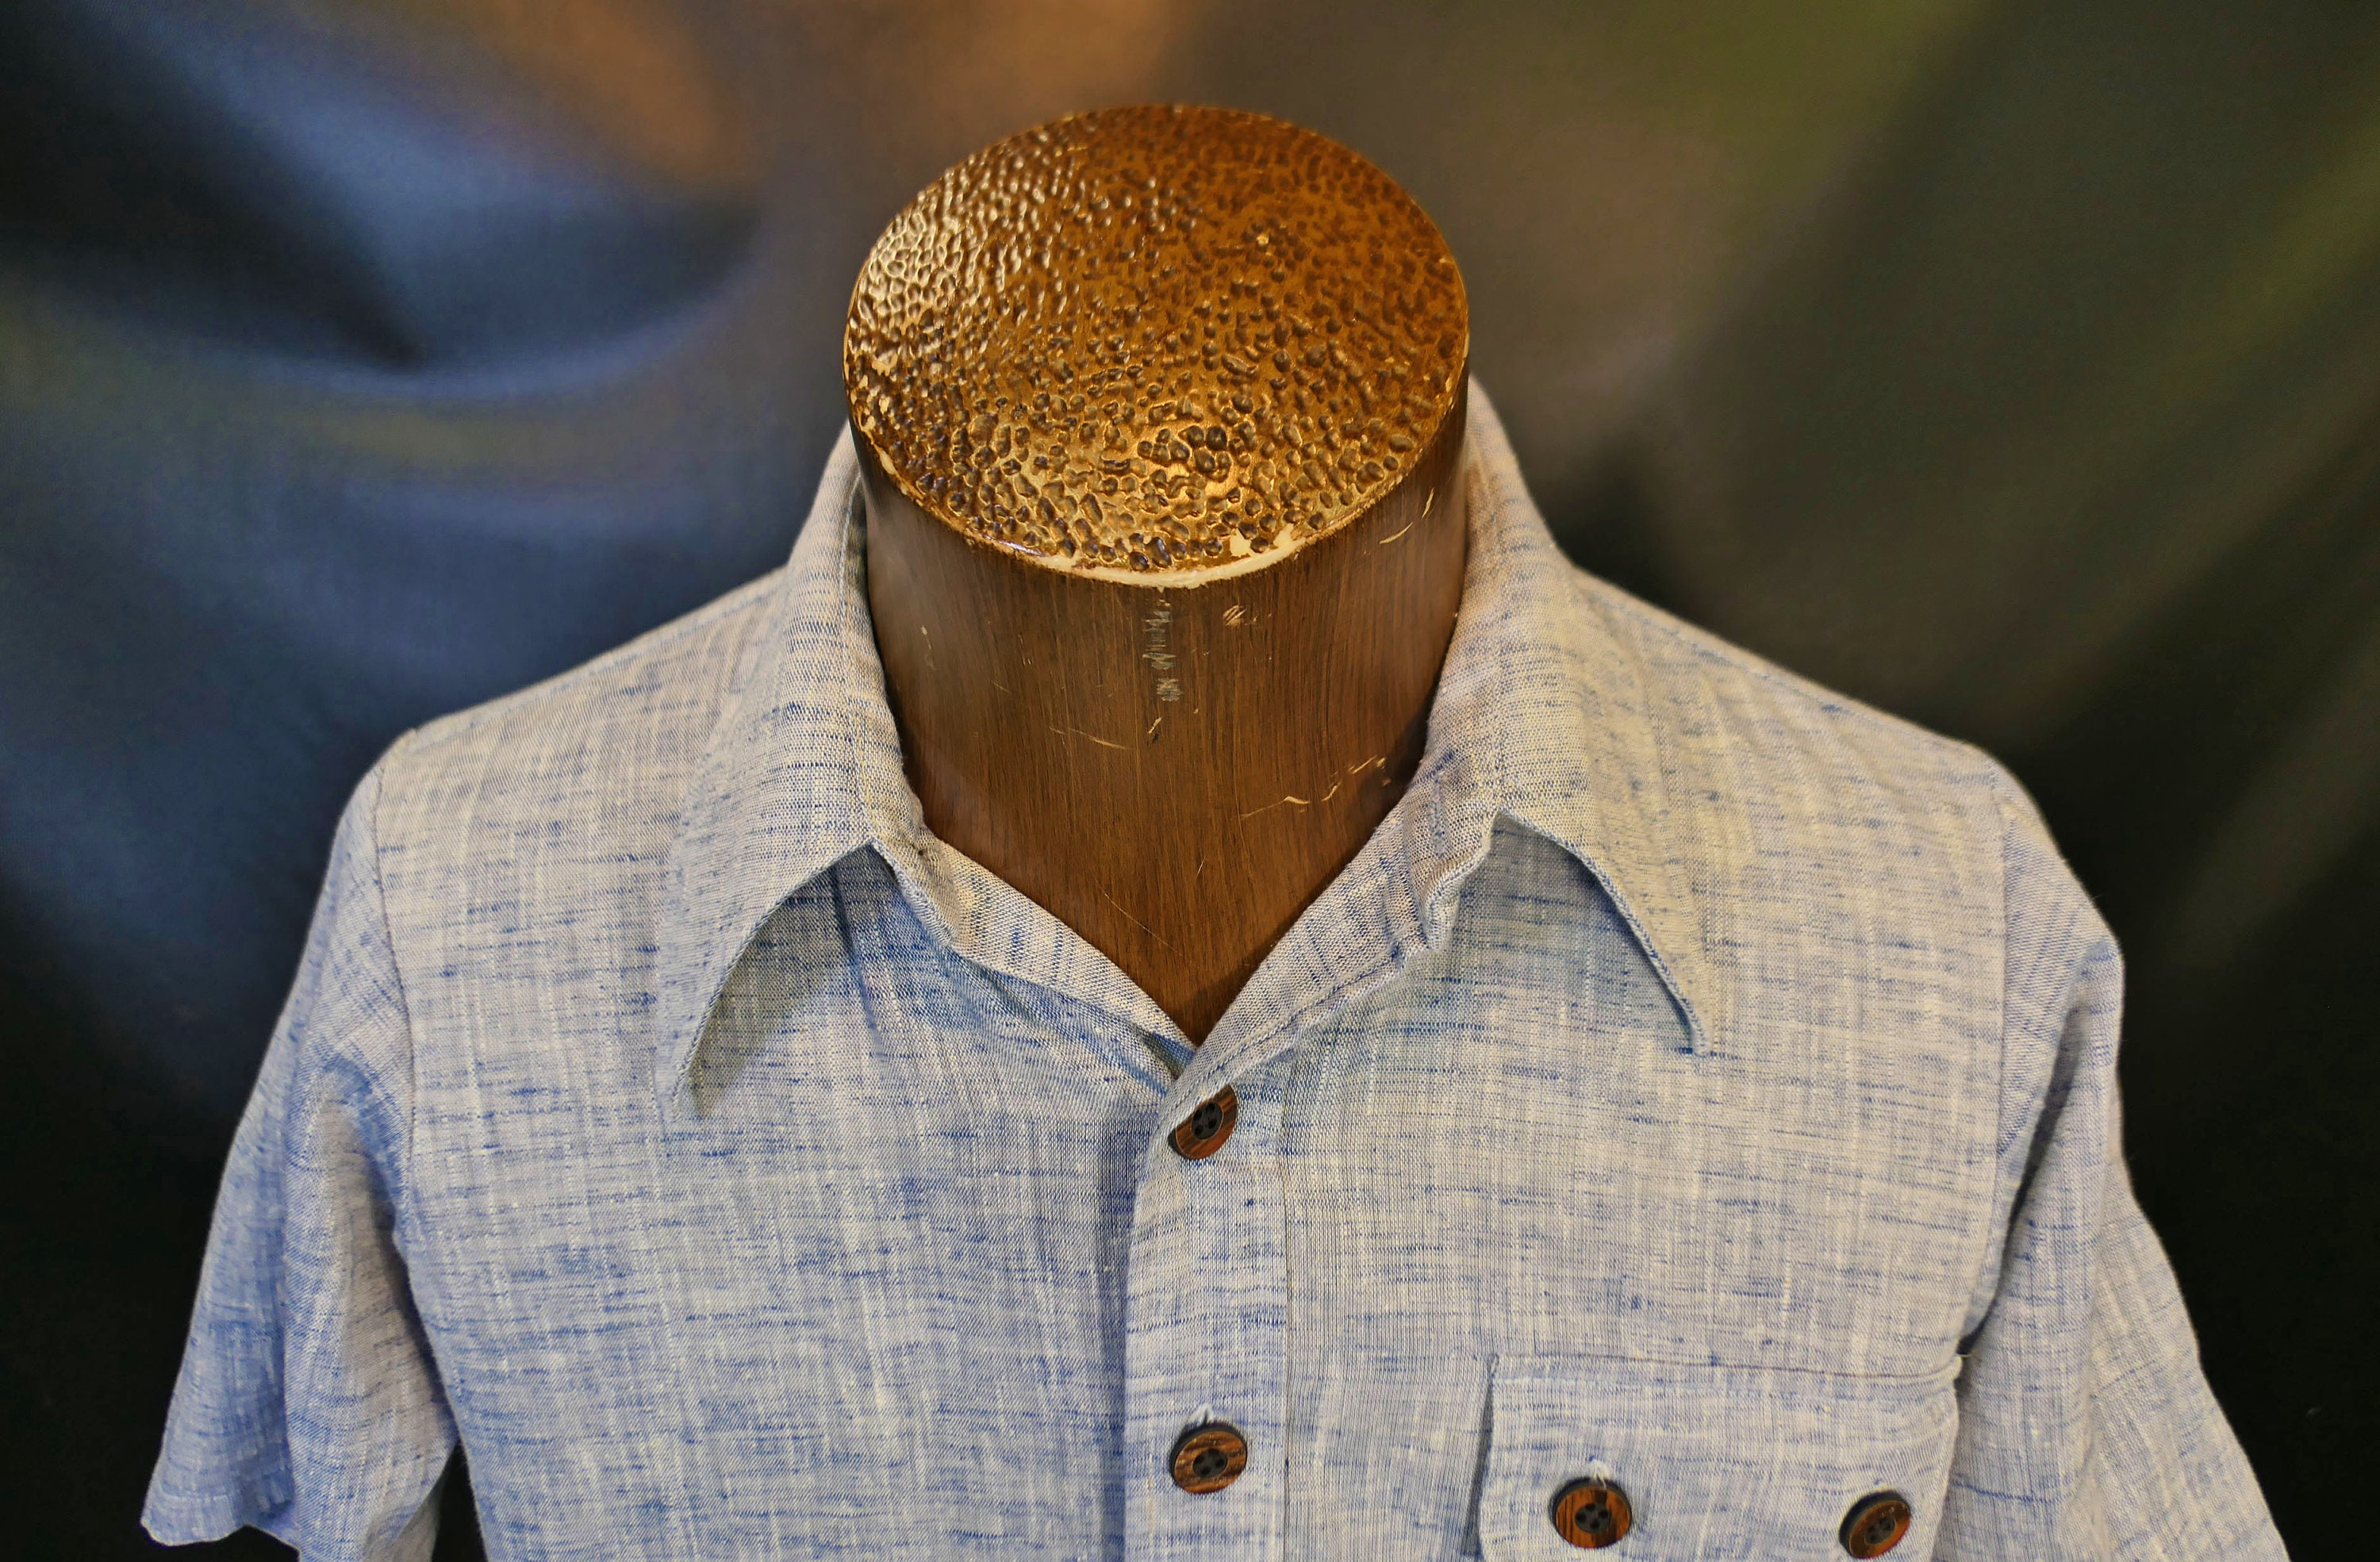 1970s Men's Shirt Styles – Vintage 70s Shirts for Guys Vintage Mens Manhattan This Is My Bag Blue Solid Chambray Big Collar Dress Shirt 1970s Designer Size Small $44.00 AT vintagedancer.com